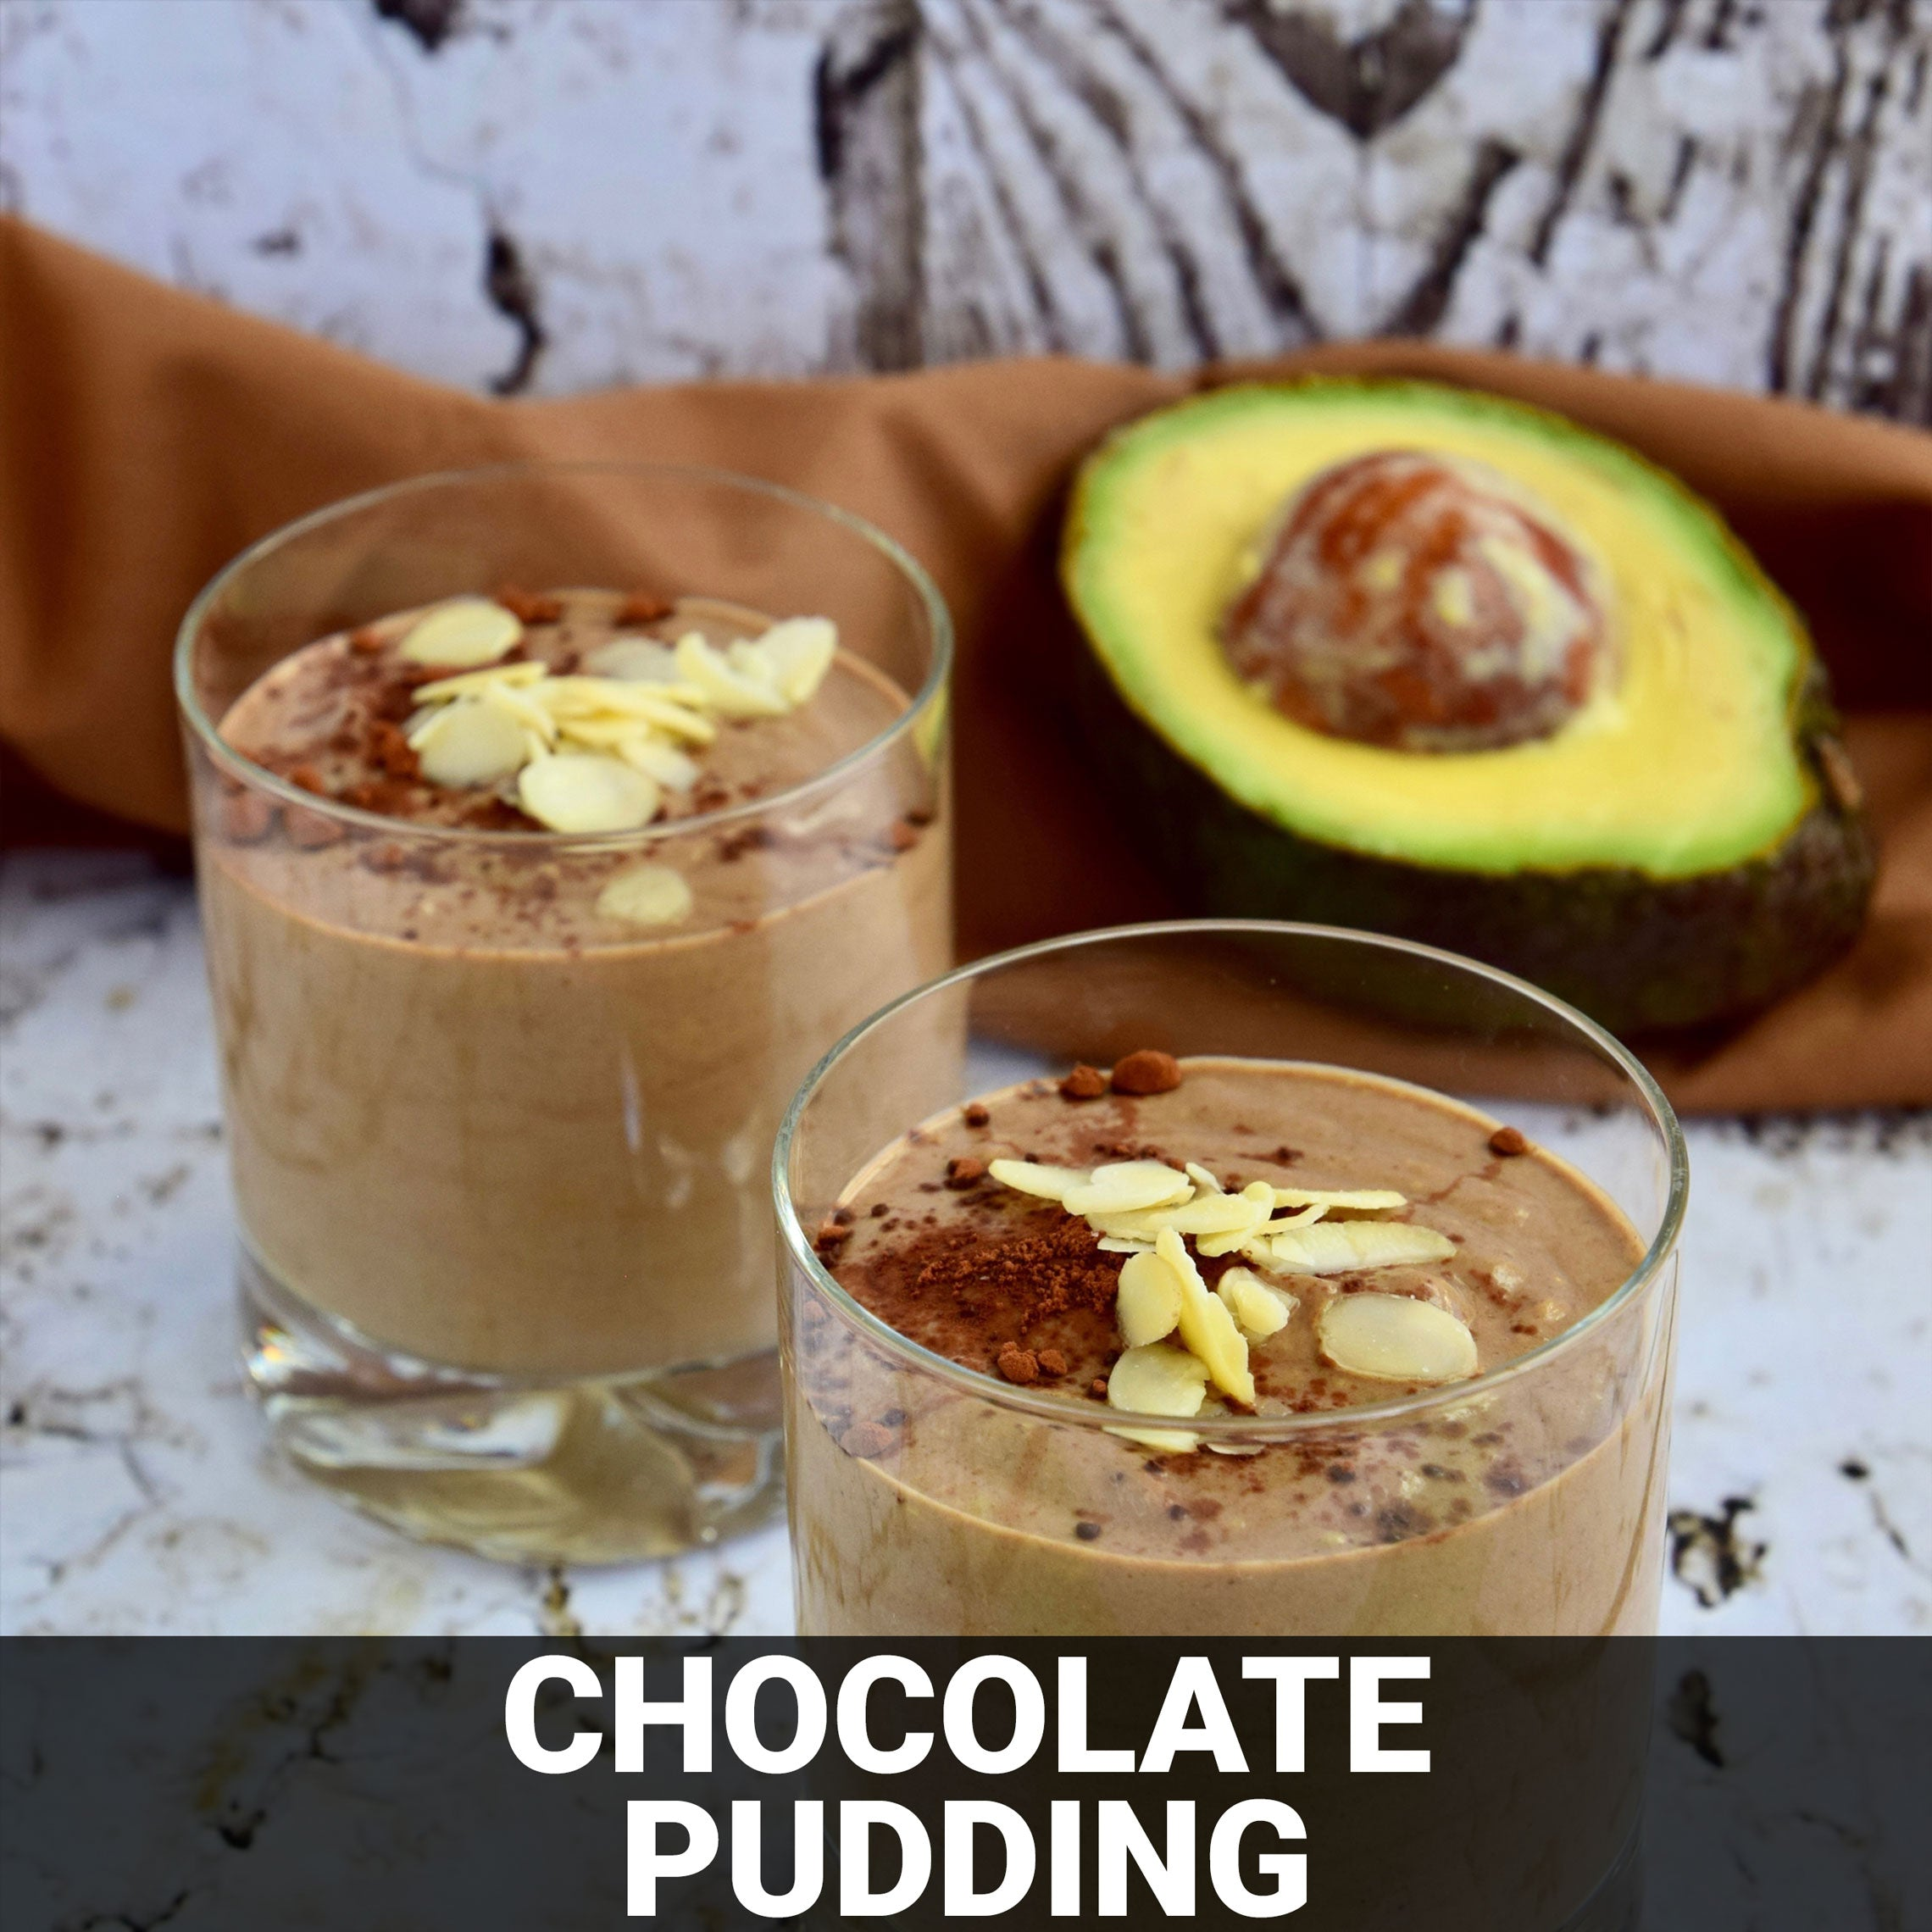 Chocolate Pudding Recipe - Foods Alive